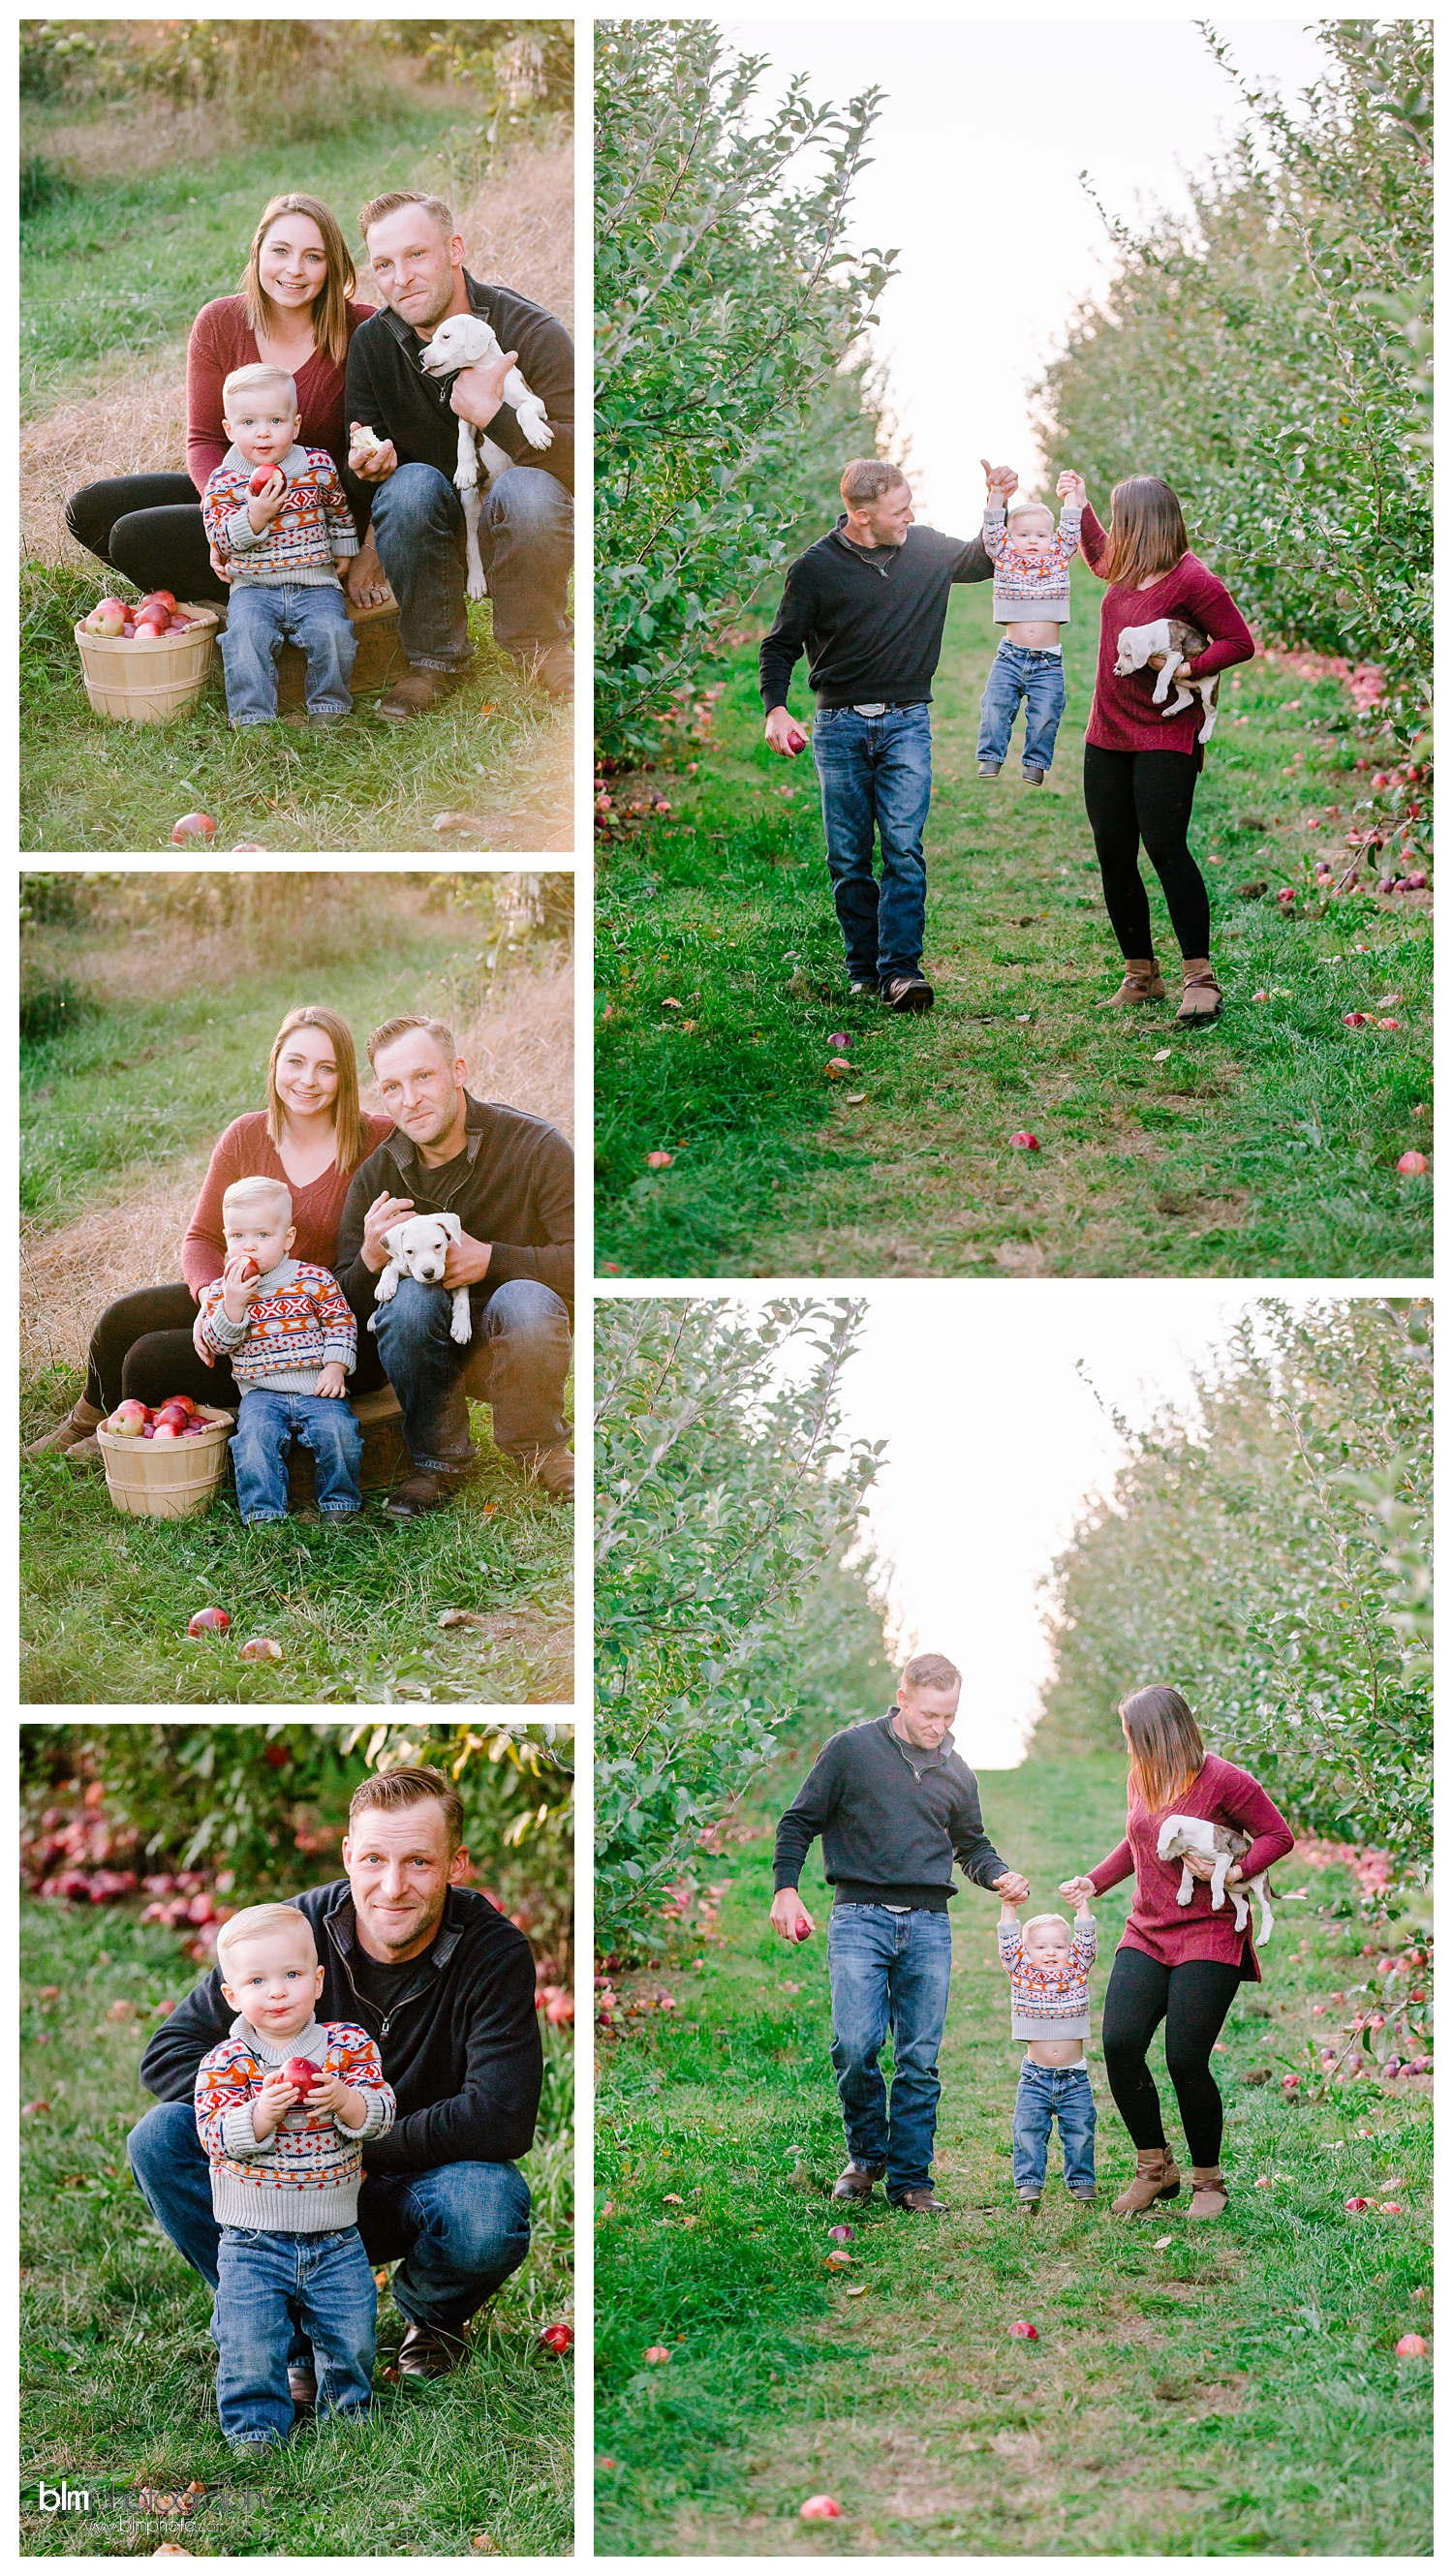 Apple Orchard,Axle,BLM,Brianna Morrissey,Brie Morrissey,Buddy,Candid,Family Photography,Family Portraits,Family with Puppy,Hunter,Kathleen,Lifestyle,Lifestyle Family Photography,Mack's Apples,Manchester Family Photographer,Natural Light,Newton Family,Newton-Family,Oct,October,Orchard Family Session,Outdoor Photography,Photo,Photographer,Photography,Southern NH,www.blmphoto.com/contact,©BLM Photography 2017,